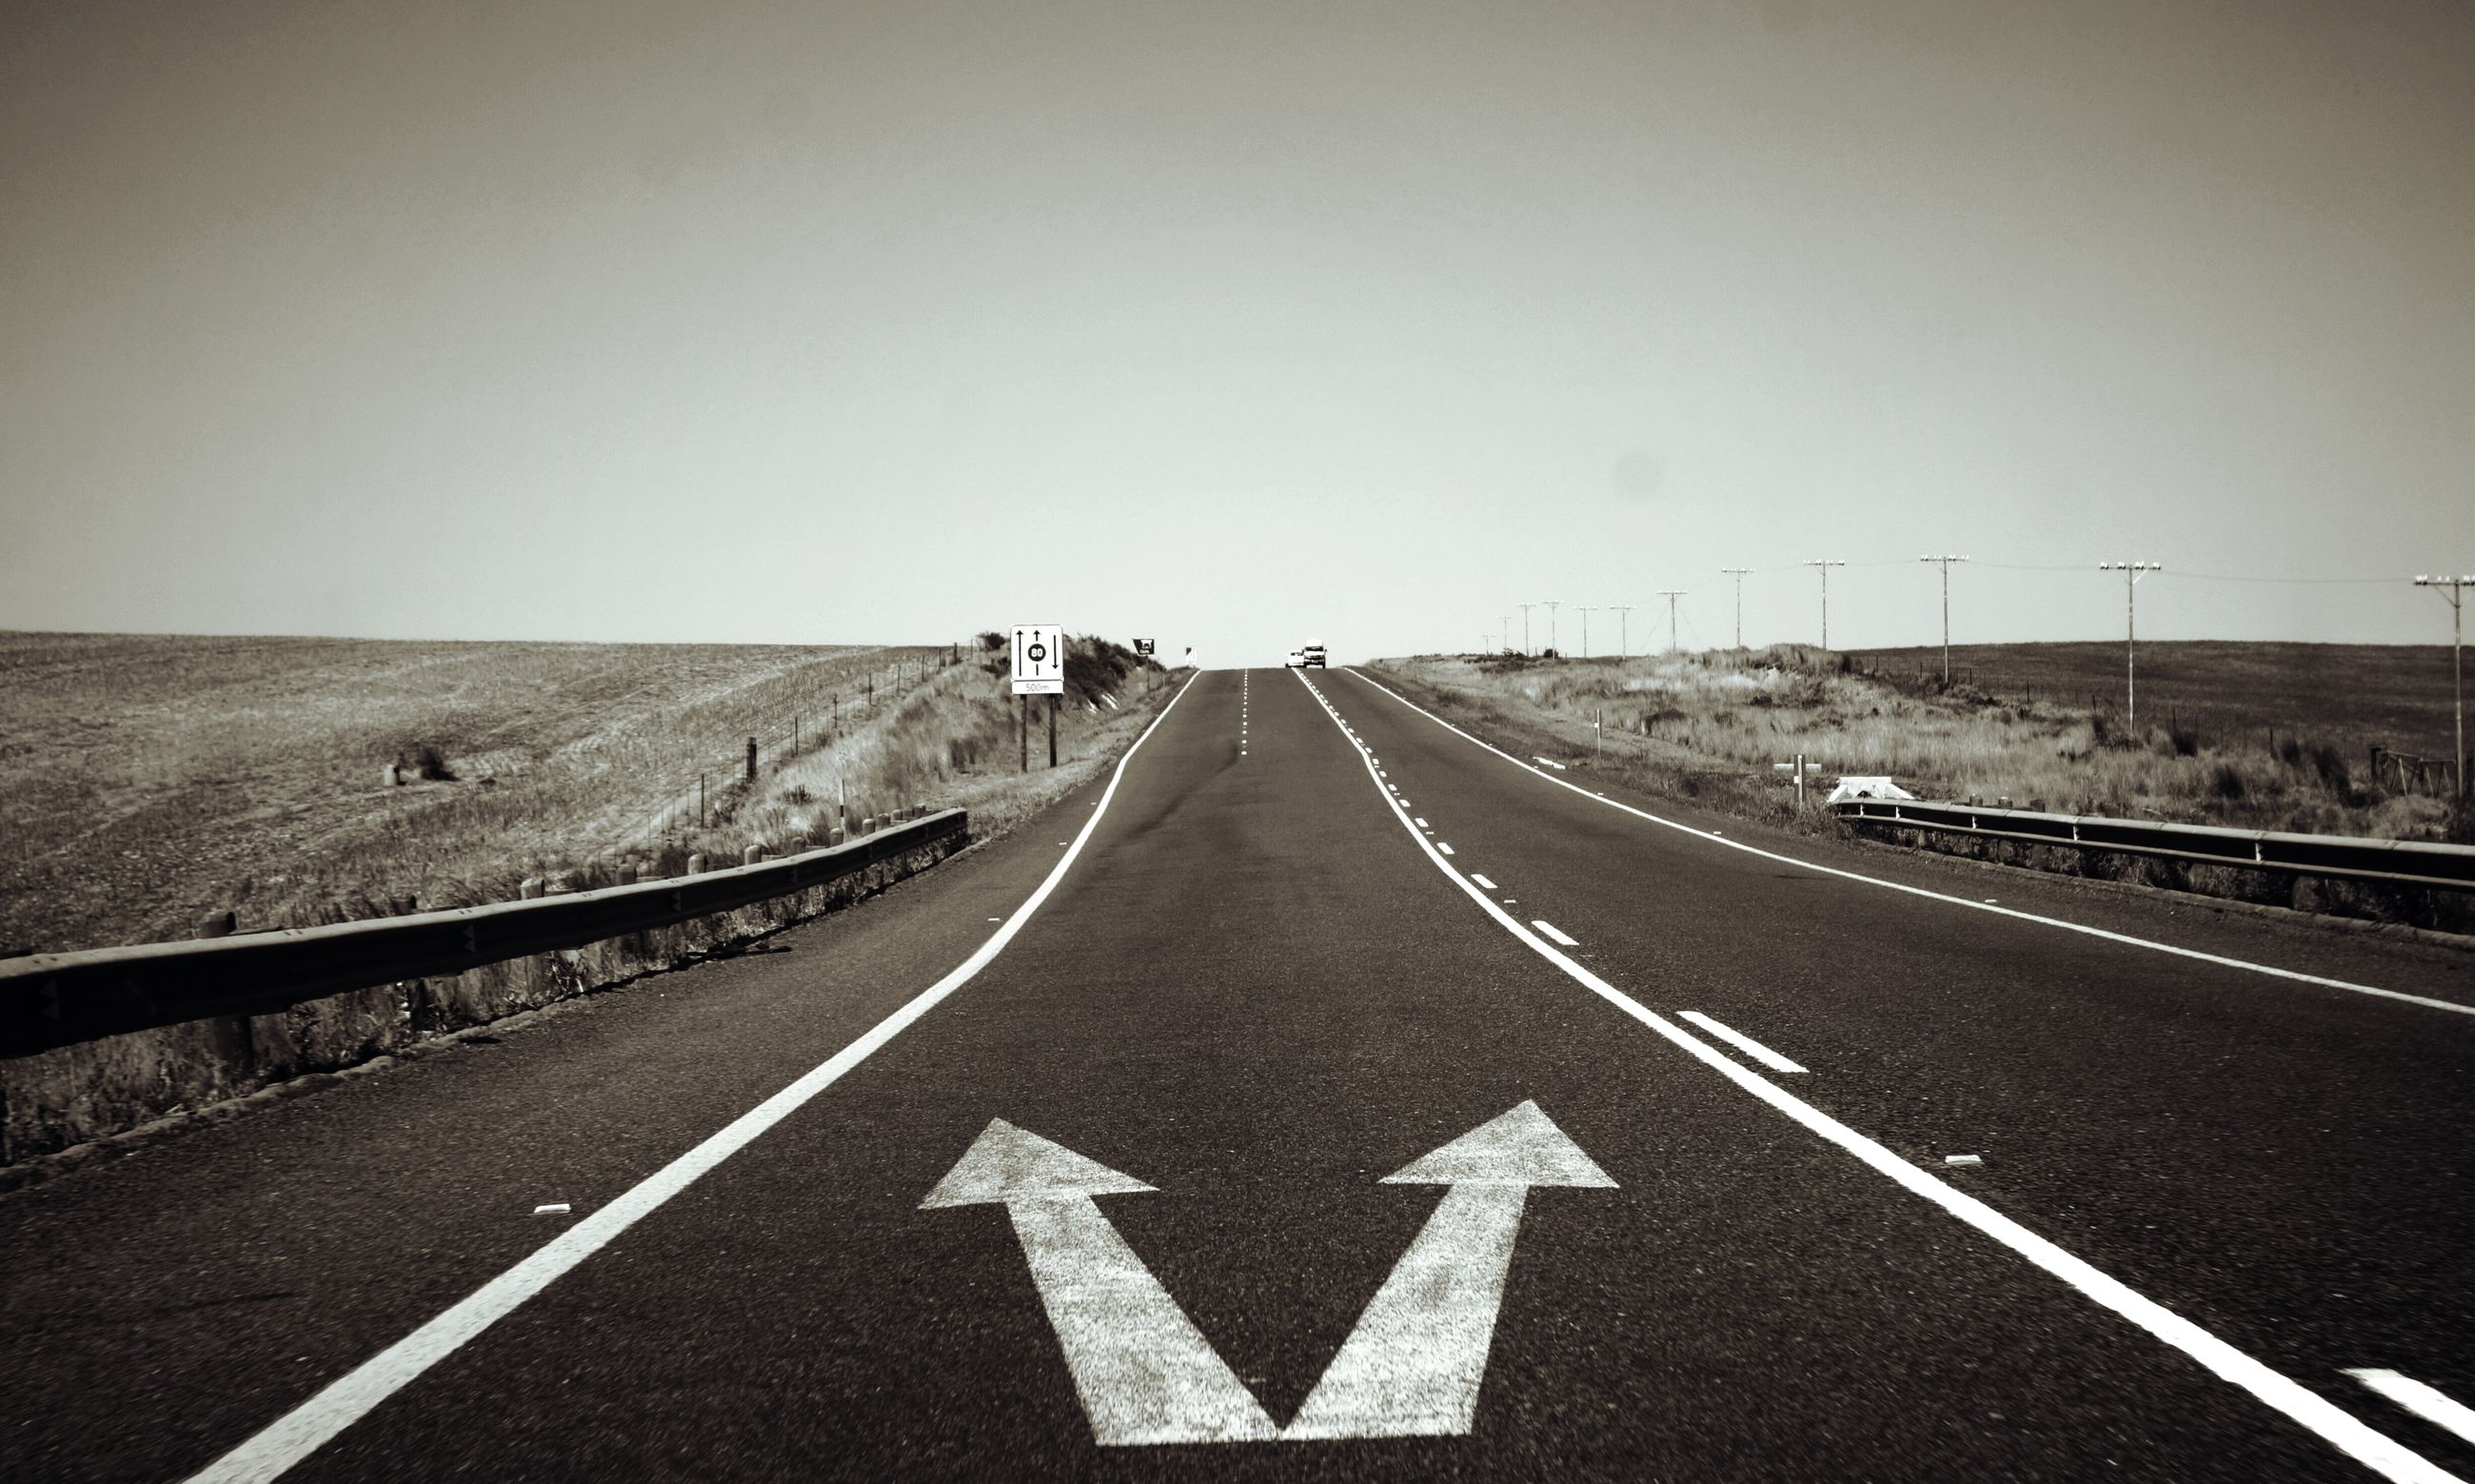 transportation, road marking, the way forward, road, diminishing perspective, vanishing point, asphalt, communication, direction, empty, text, clear sky, dividing line, guidance, empty road, copy space, road sign, arrow symbol, country road, street